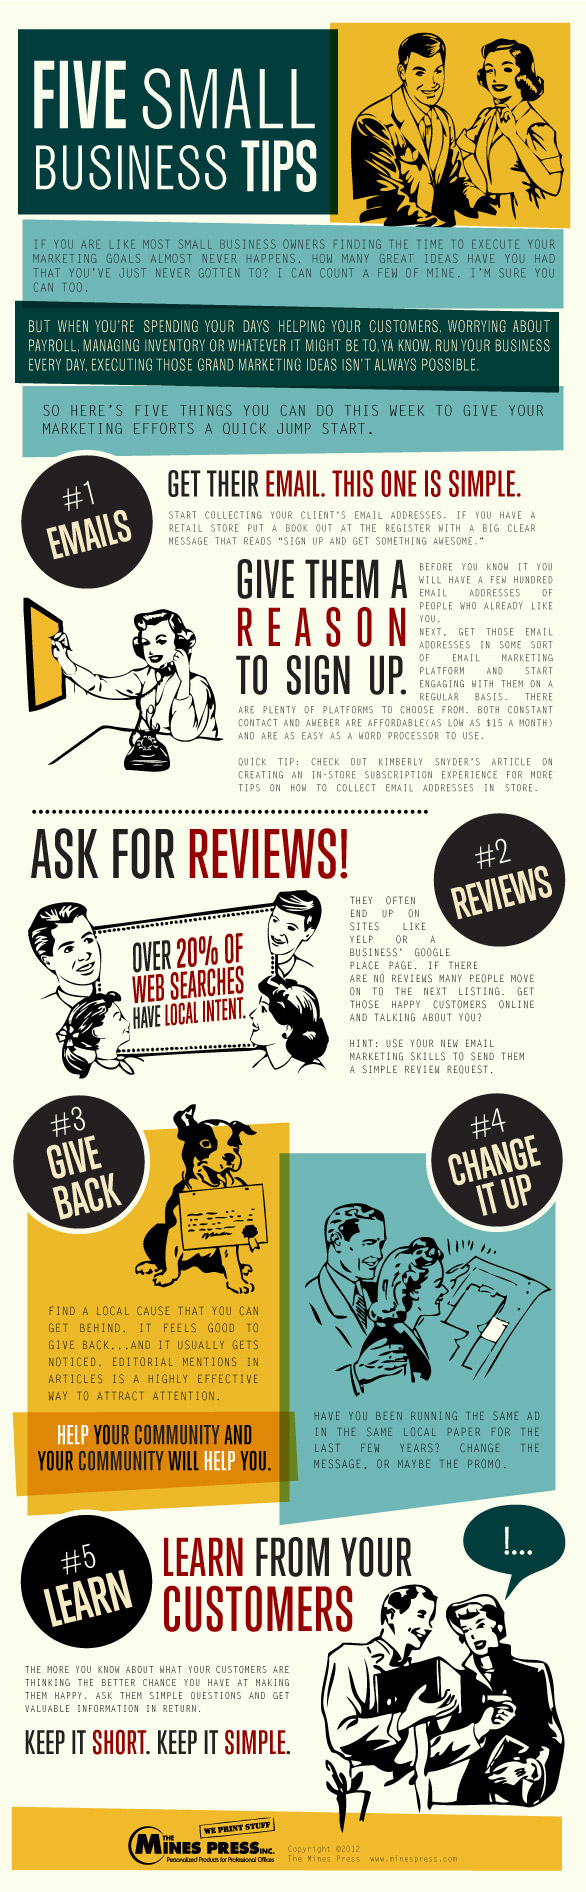 Small Business Marketing Tipss-infographic